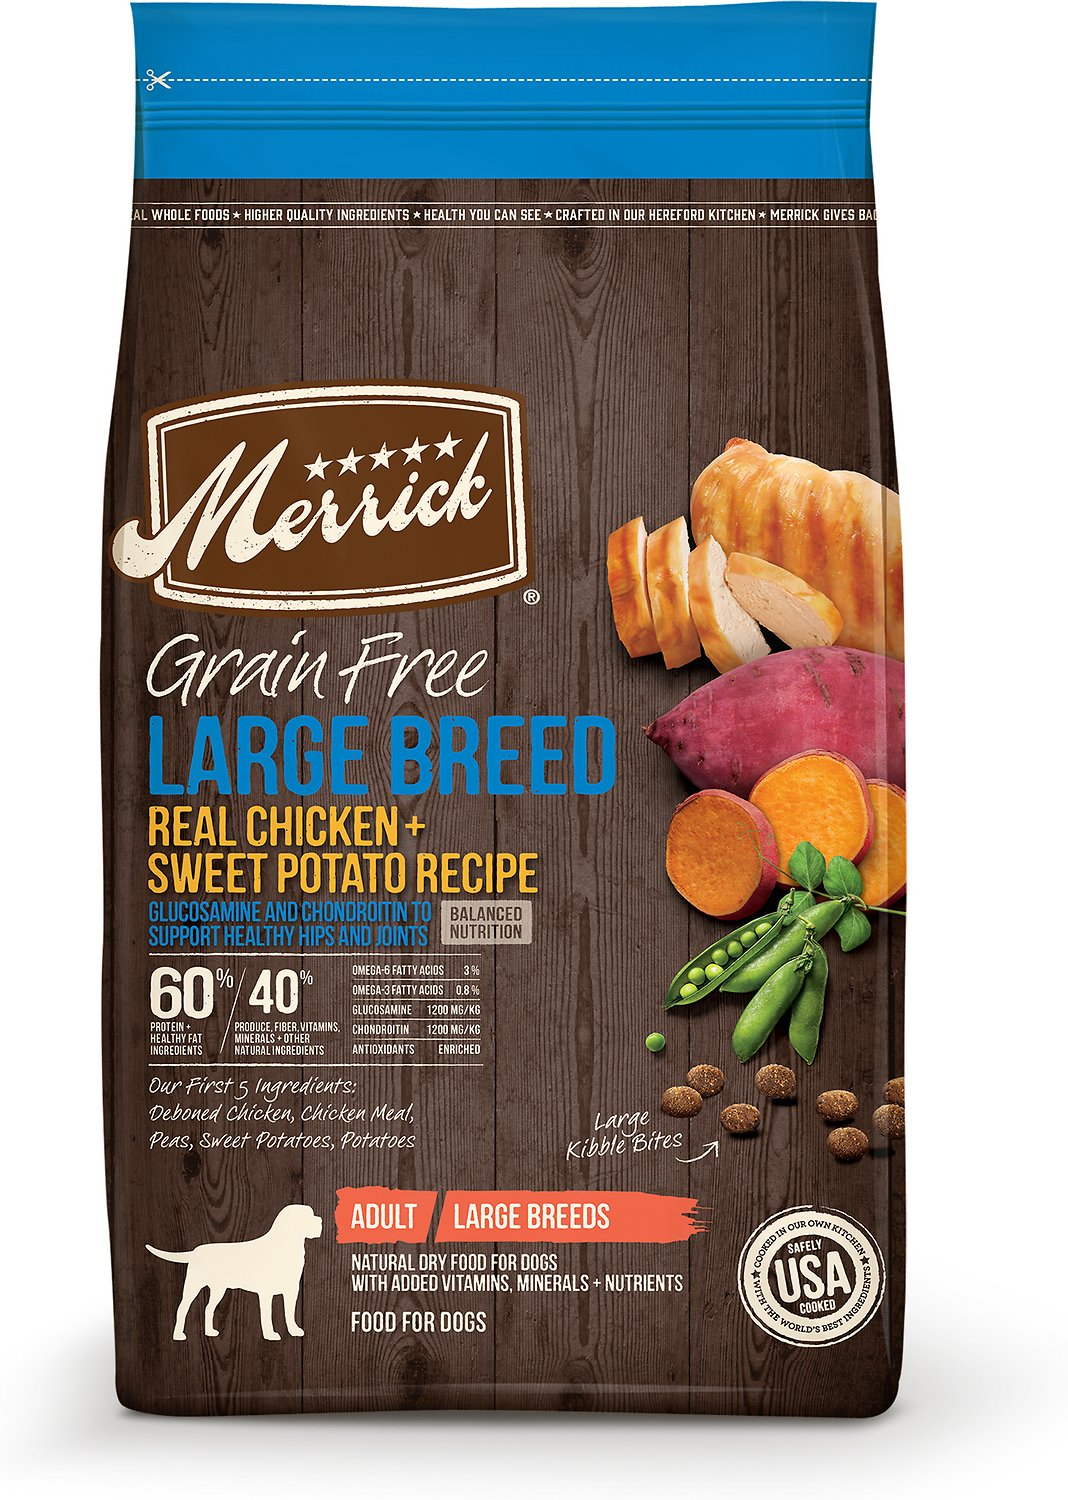 Merrick Grain-Free Large Breed Real Chicken & Sweet Potato Recipe Dry Dog Food Image